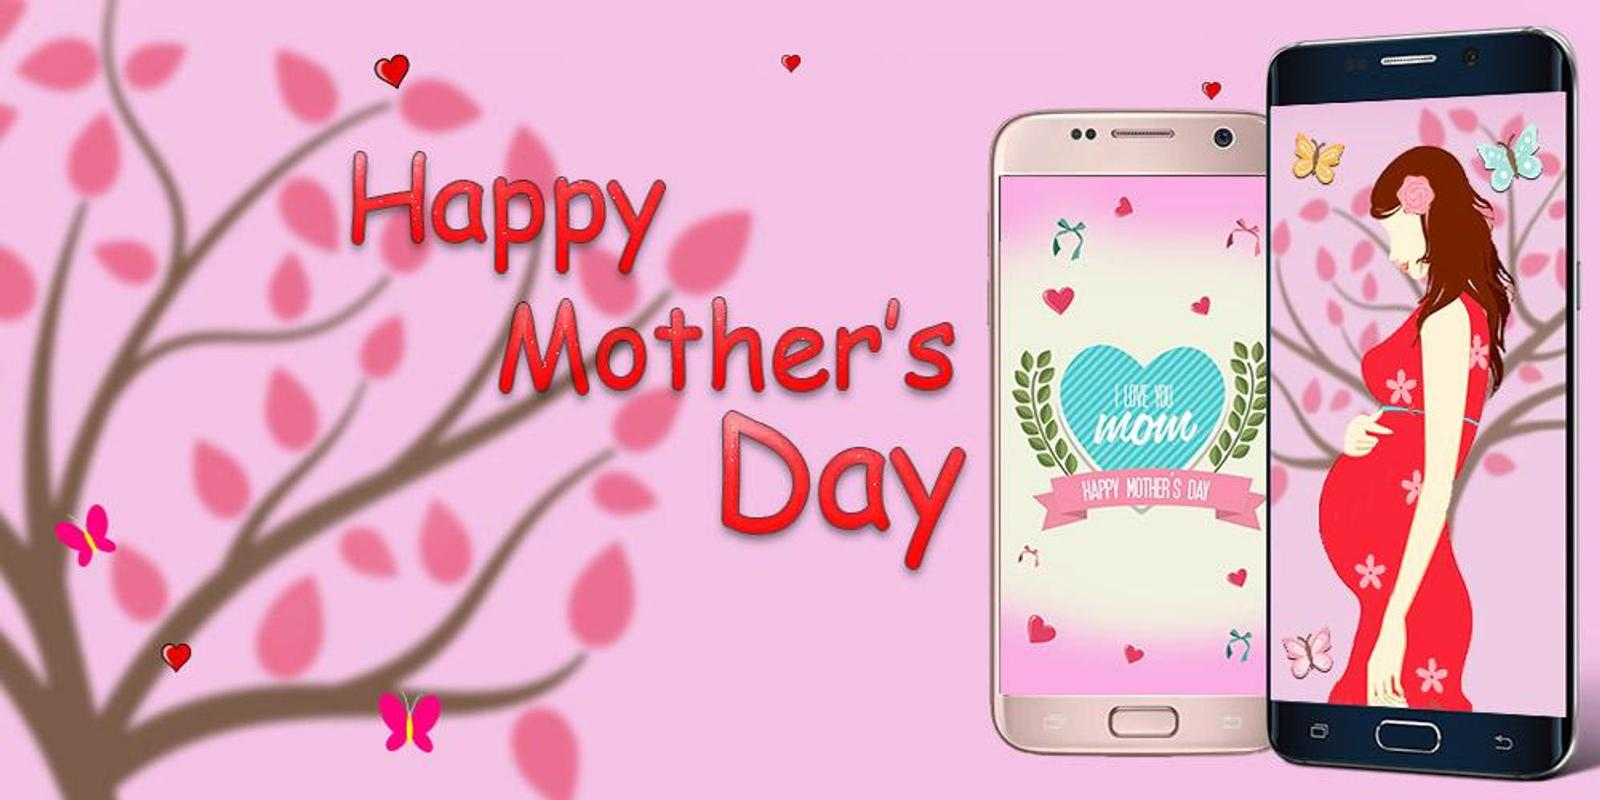 I Love You Mom Live Wallpaper For Android Apk Download